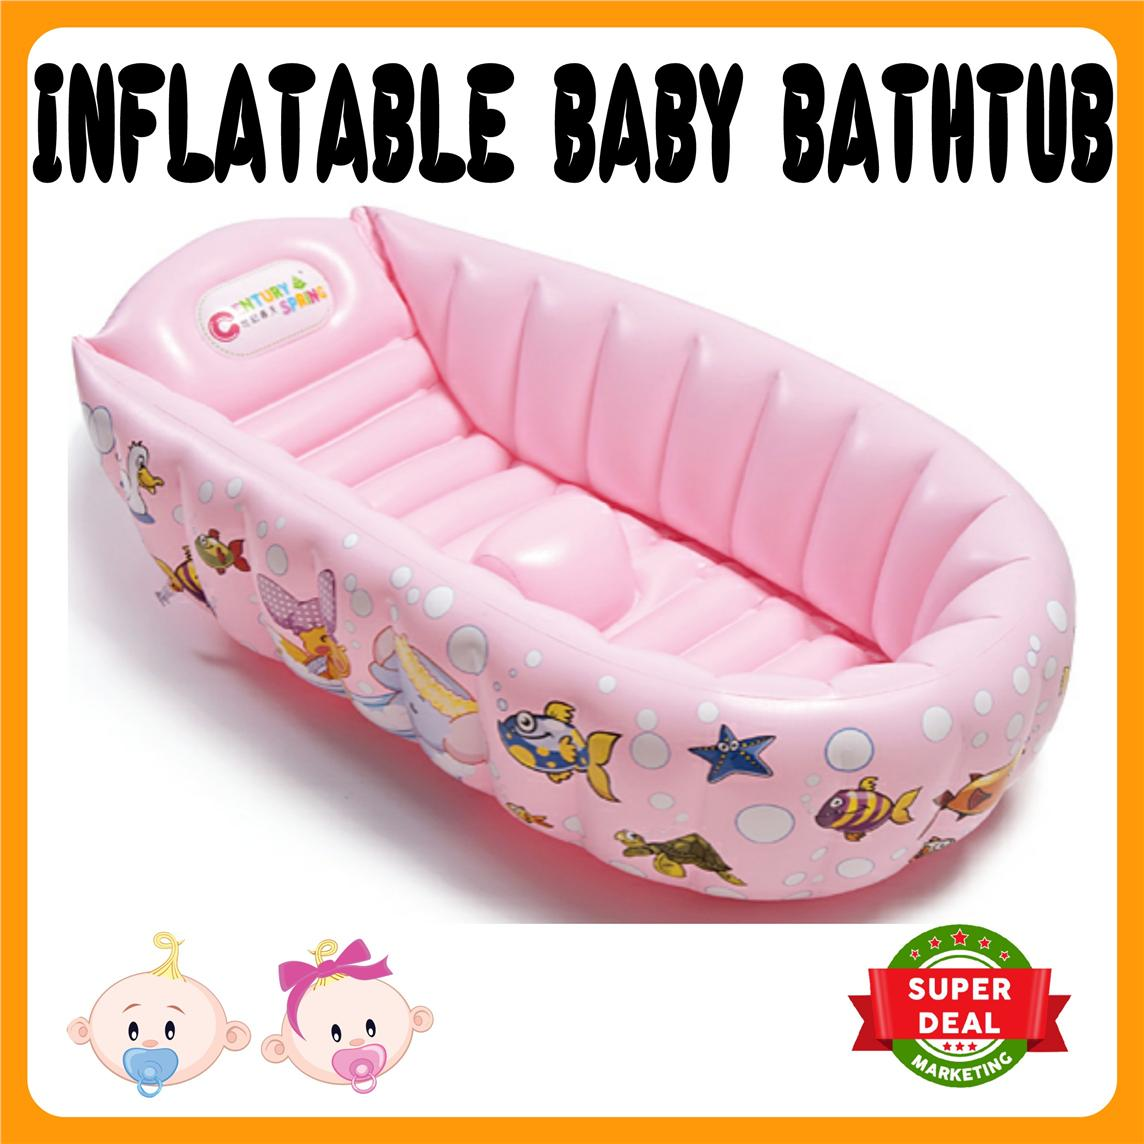 Extra Thick Inflatable Baby Bathtub End 8152020 515 PM